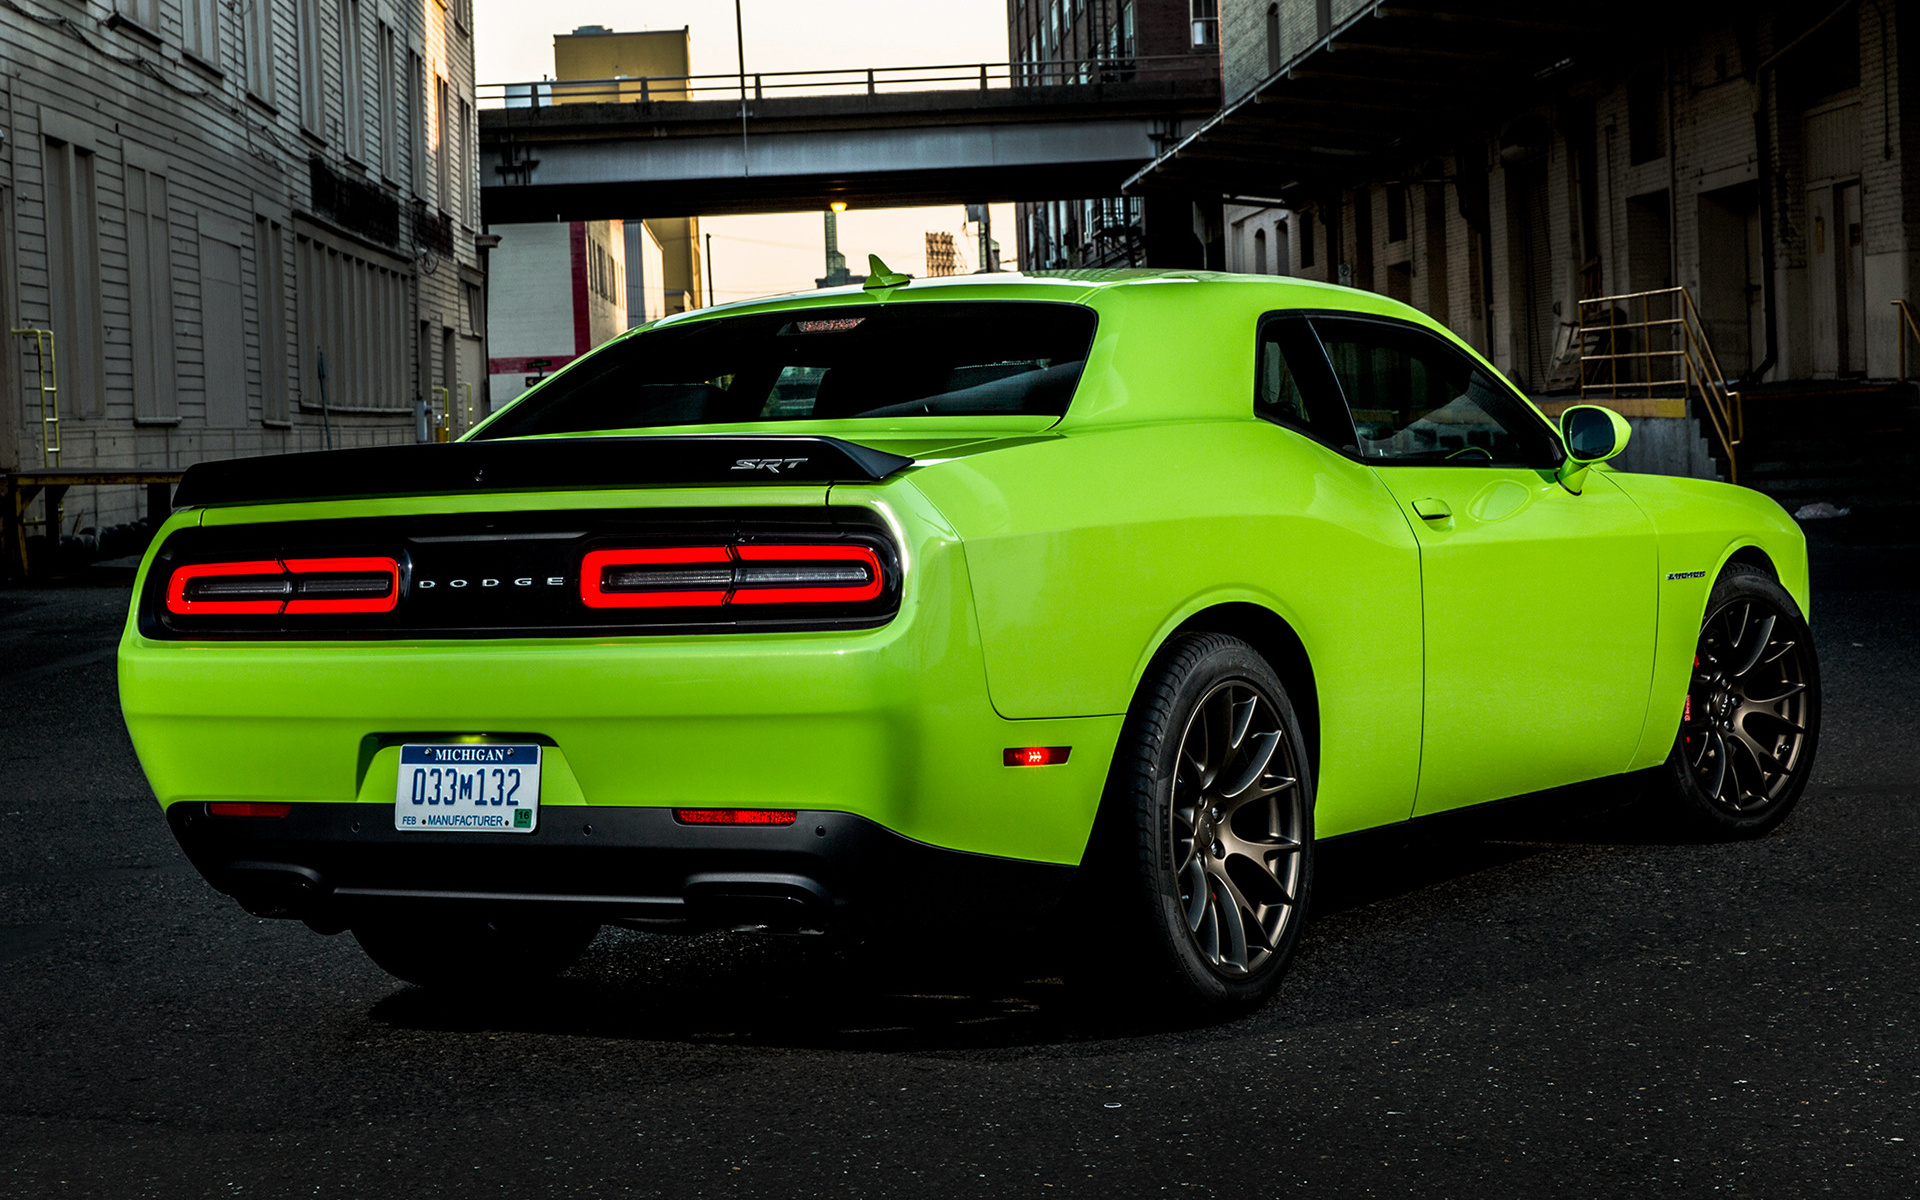 Dodge Challenger SRT Hellcat (2015) Wallpapers and HD Images